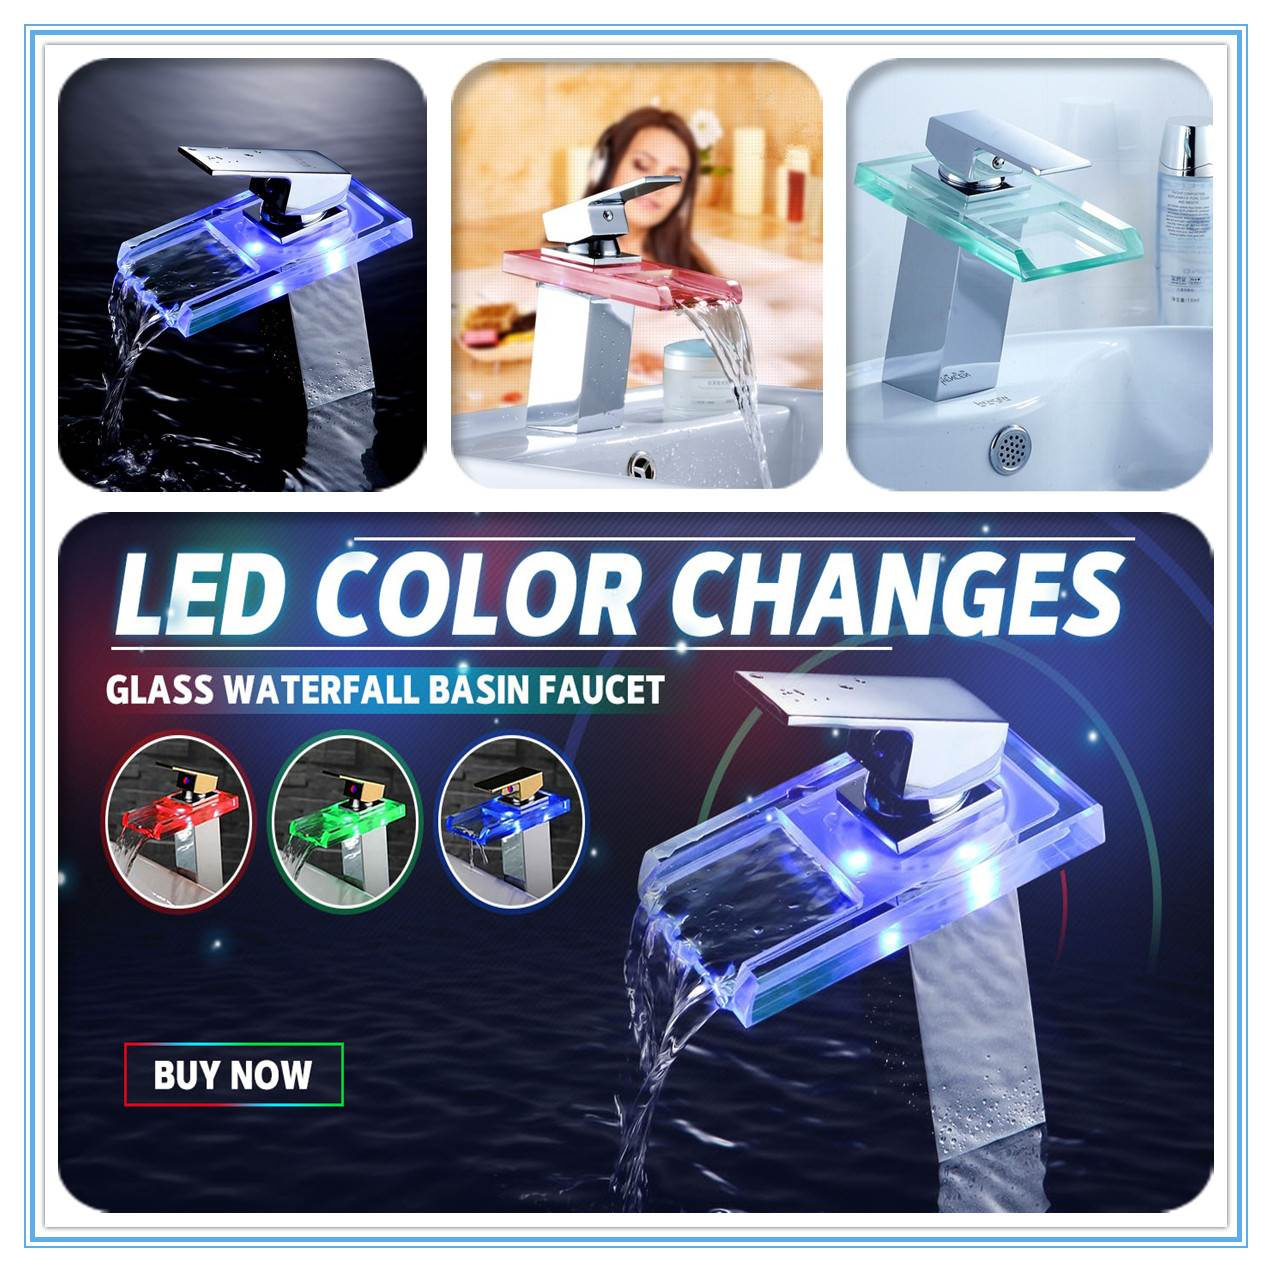 LED Color Changes Glass Waterfall Basin Faucet Bathroom Bath Tub Single Handle Sink Mixer Tap Kitchen Water Faucet Chrome Finish